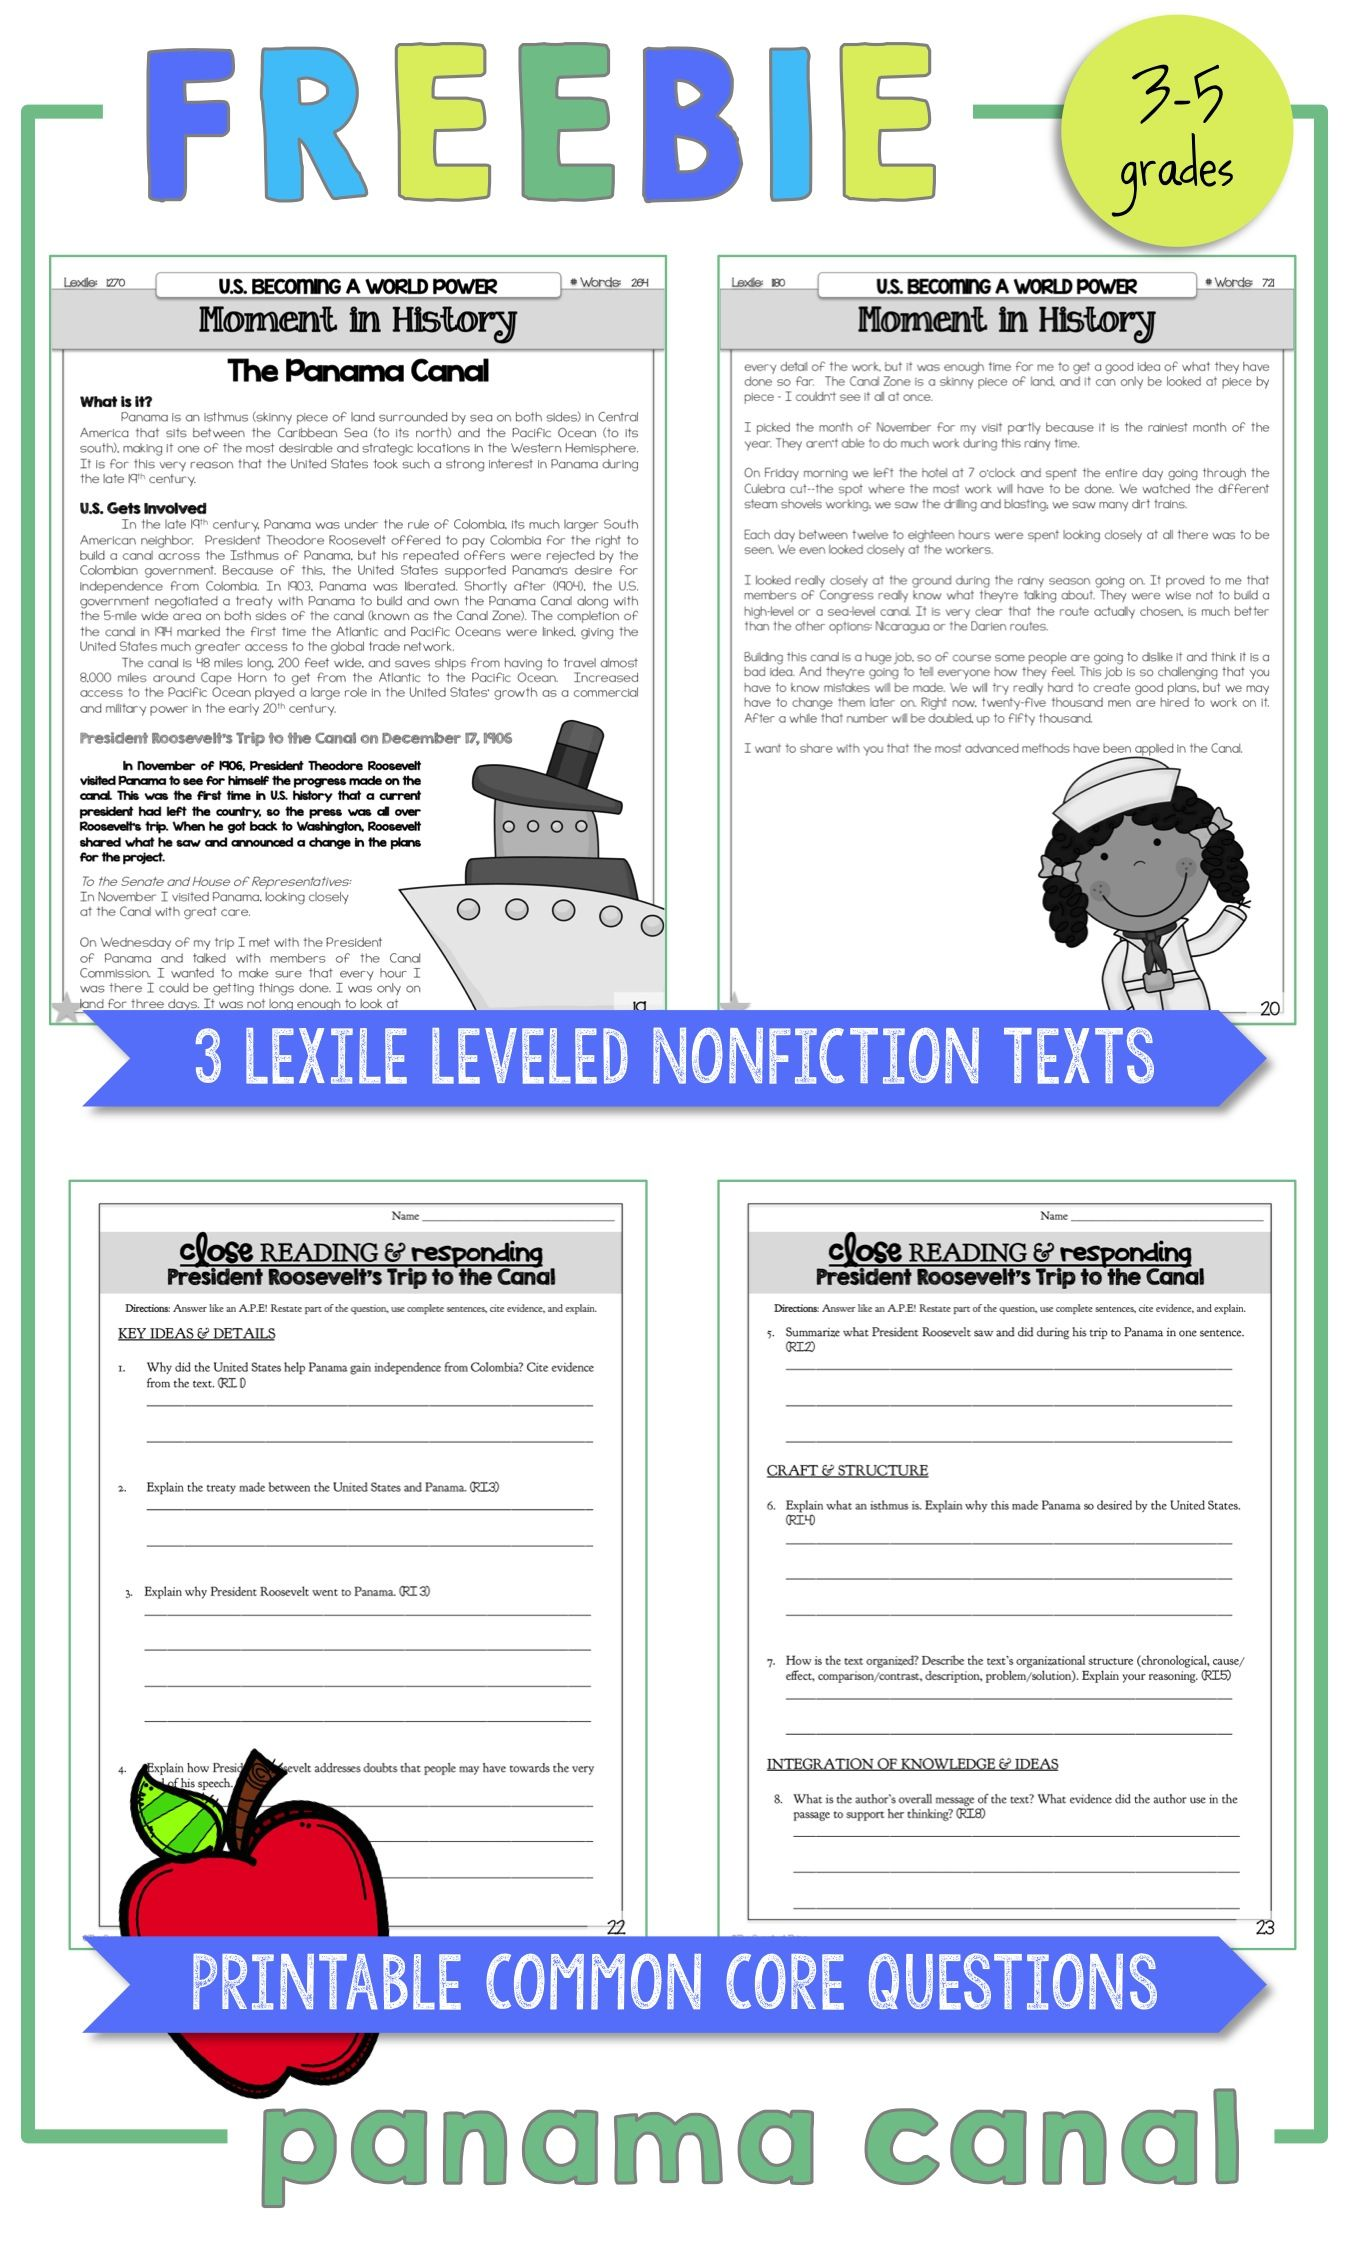 medium resolution of FREE Panama Canal Lexile-Leveled Nonfiction Texts! Printable Common Core  Questions